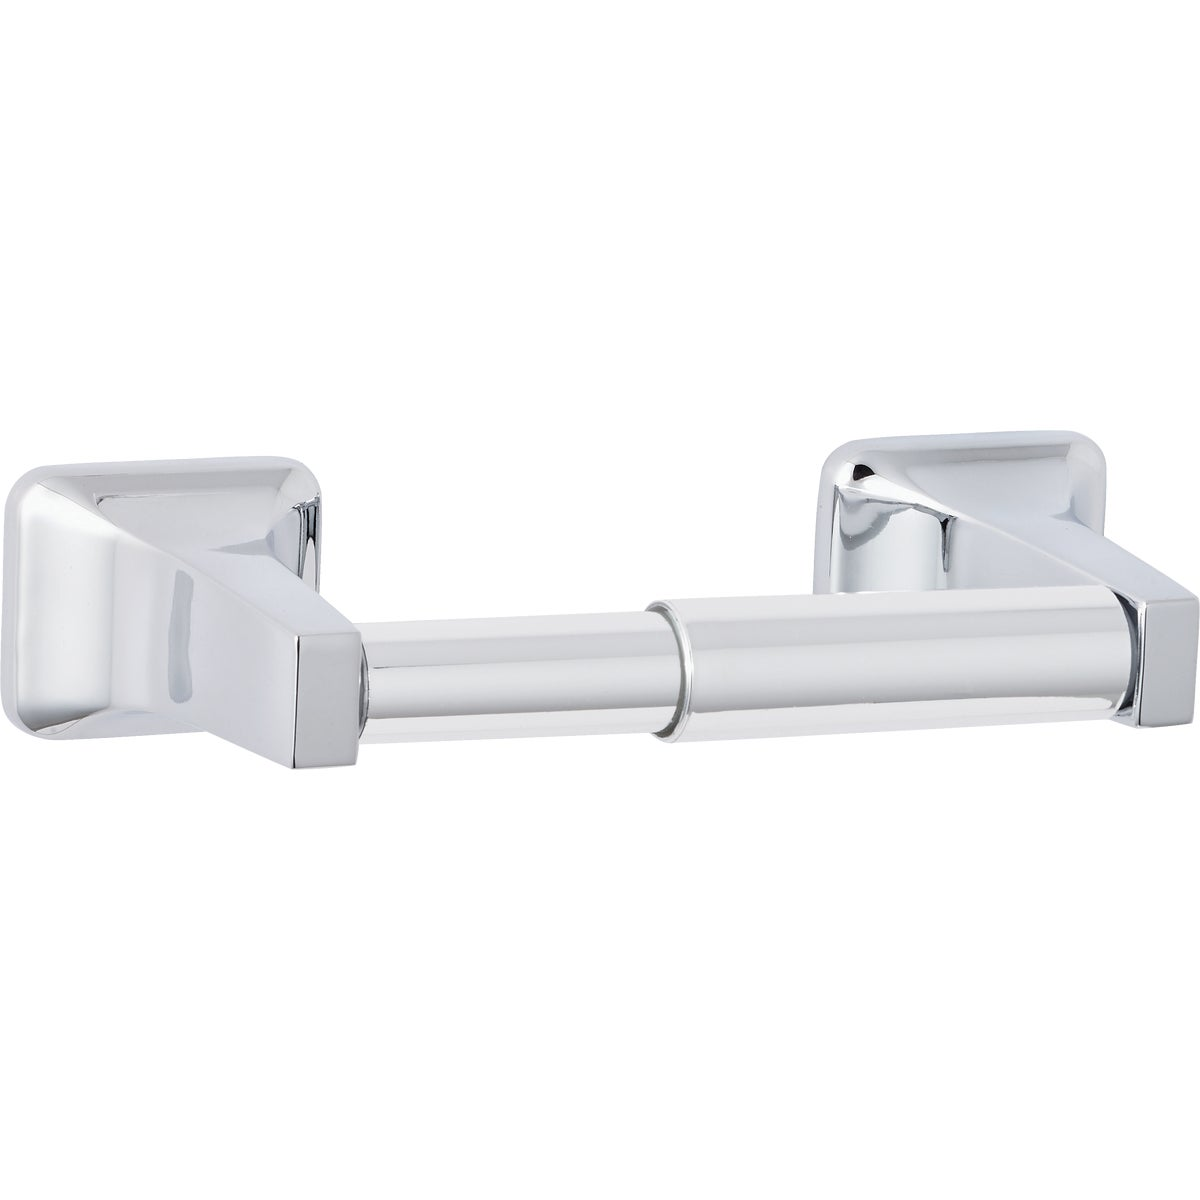 CHRME TOILETPAPER HOLDER - 409089 by Do it Best